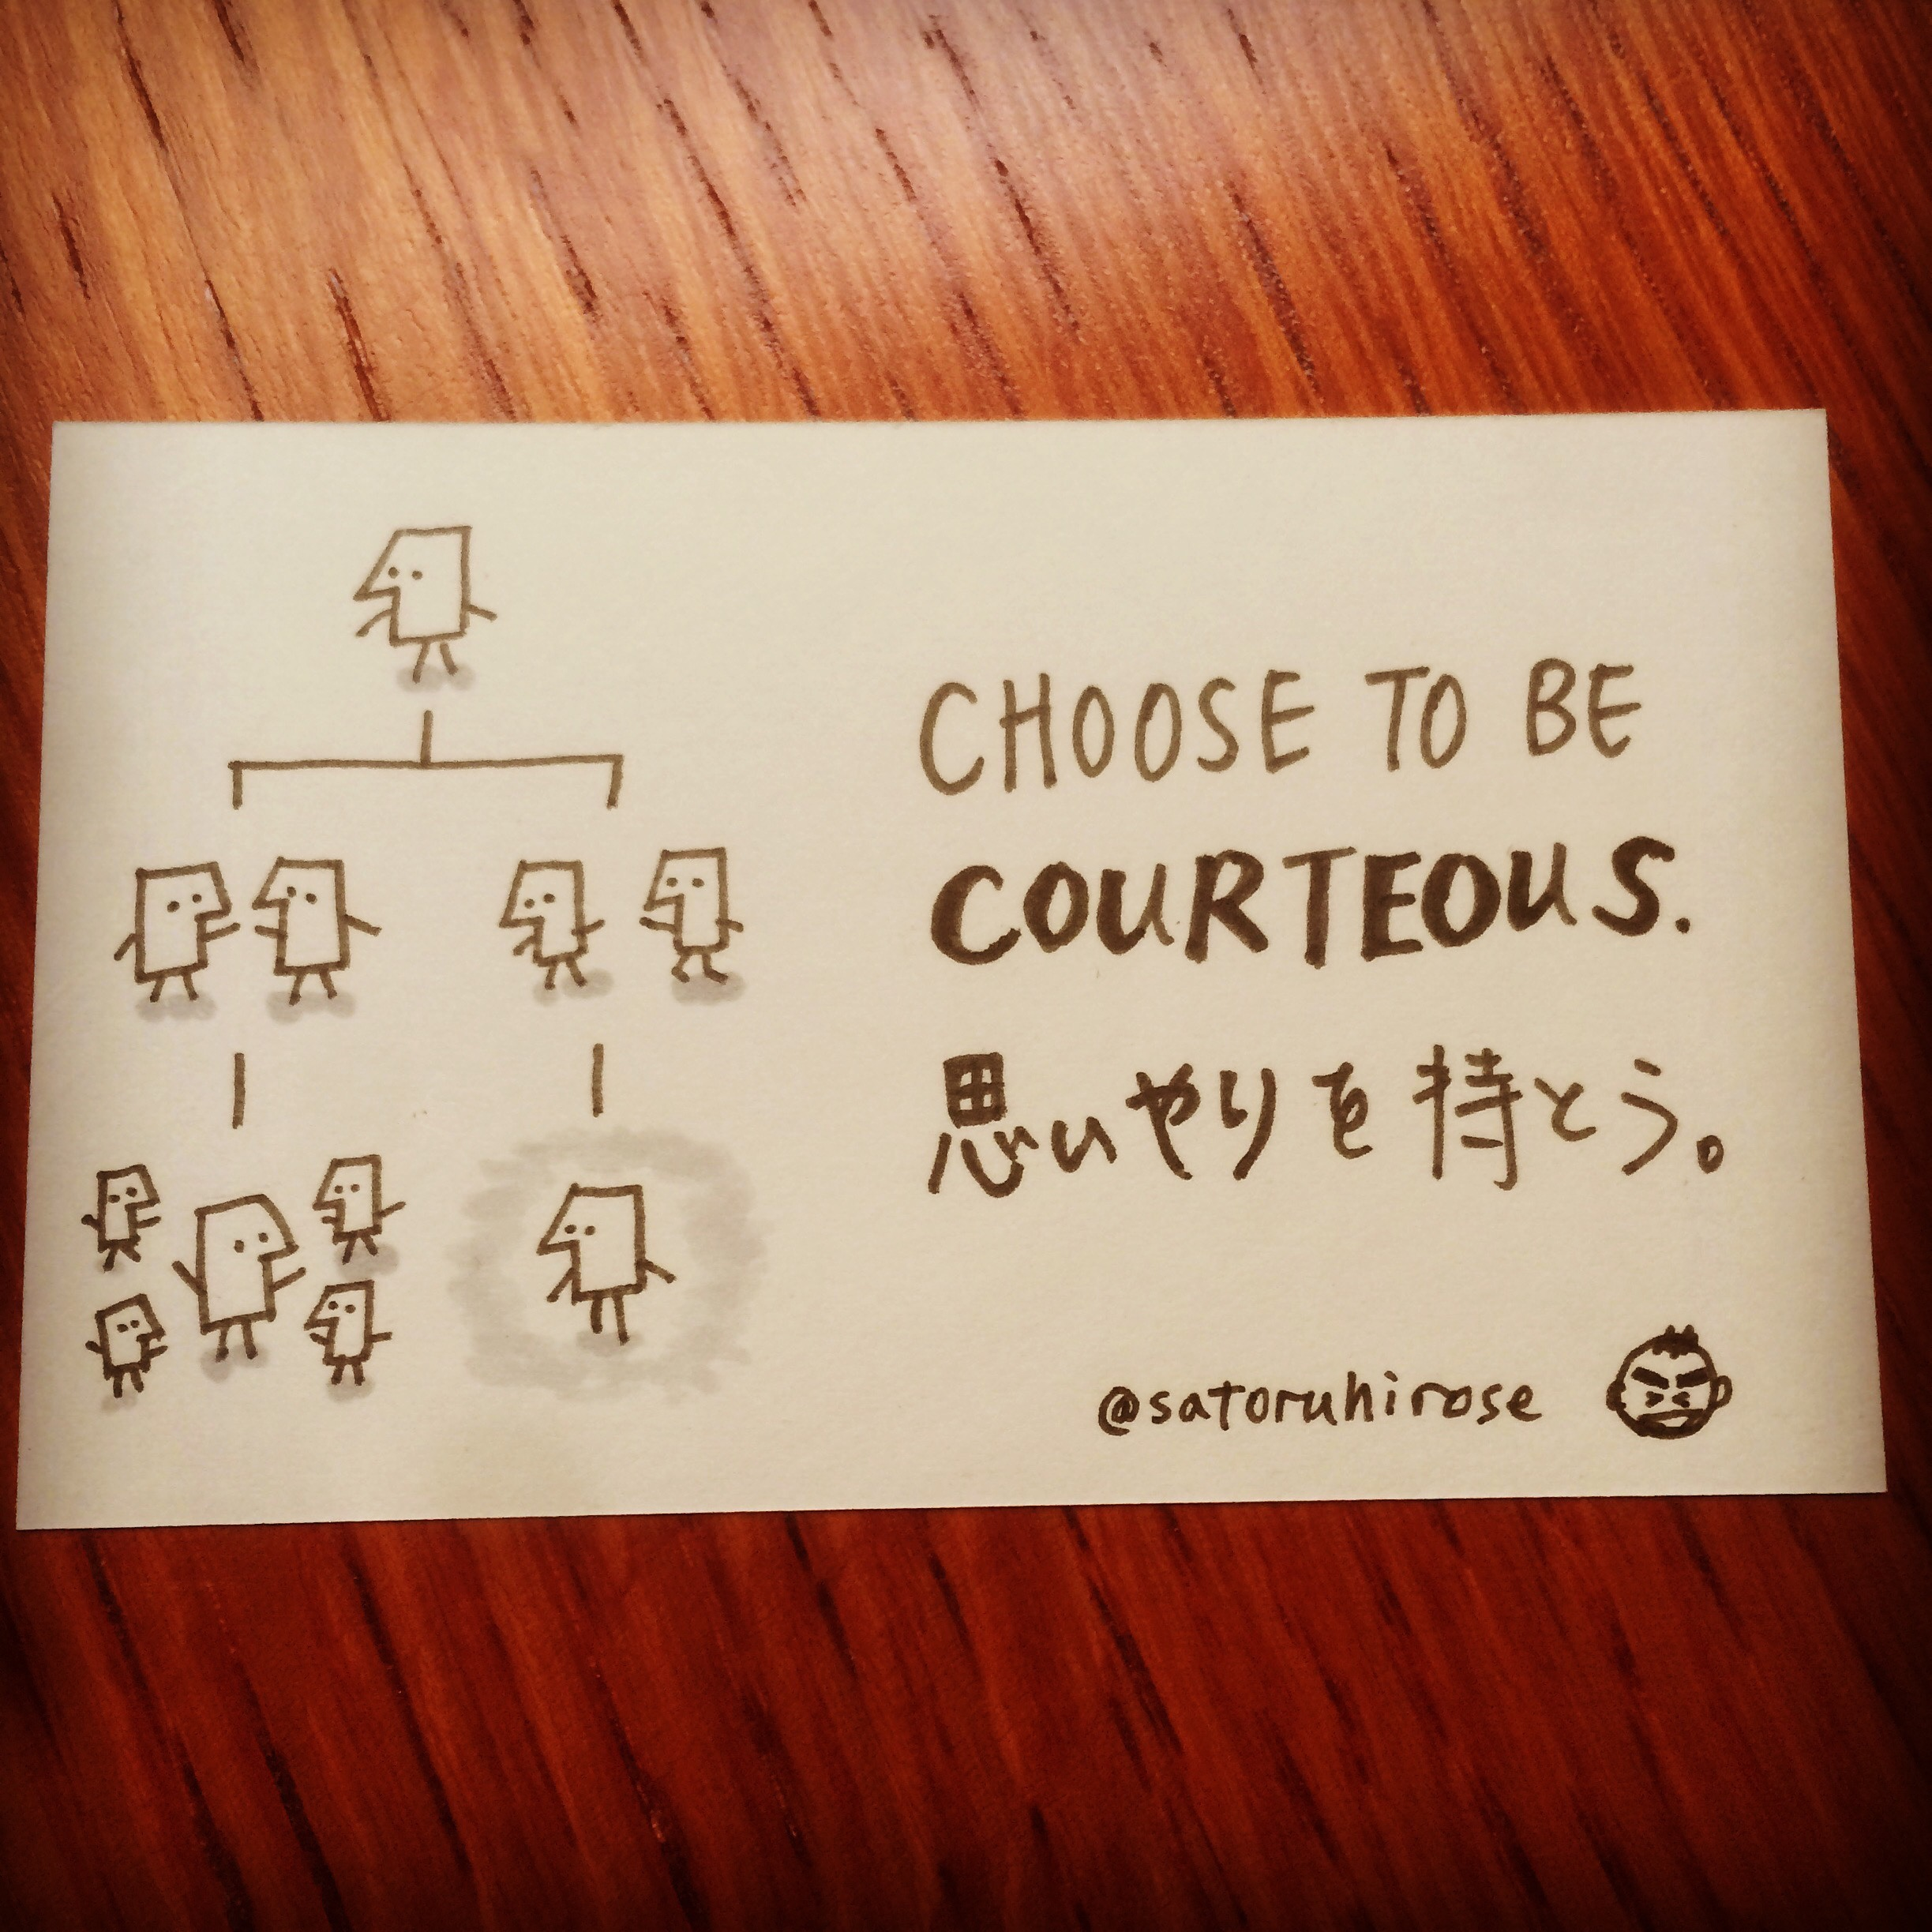 Choose to be courteous.